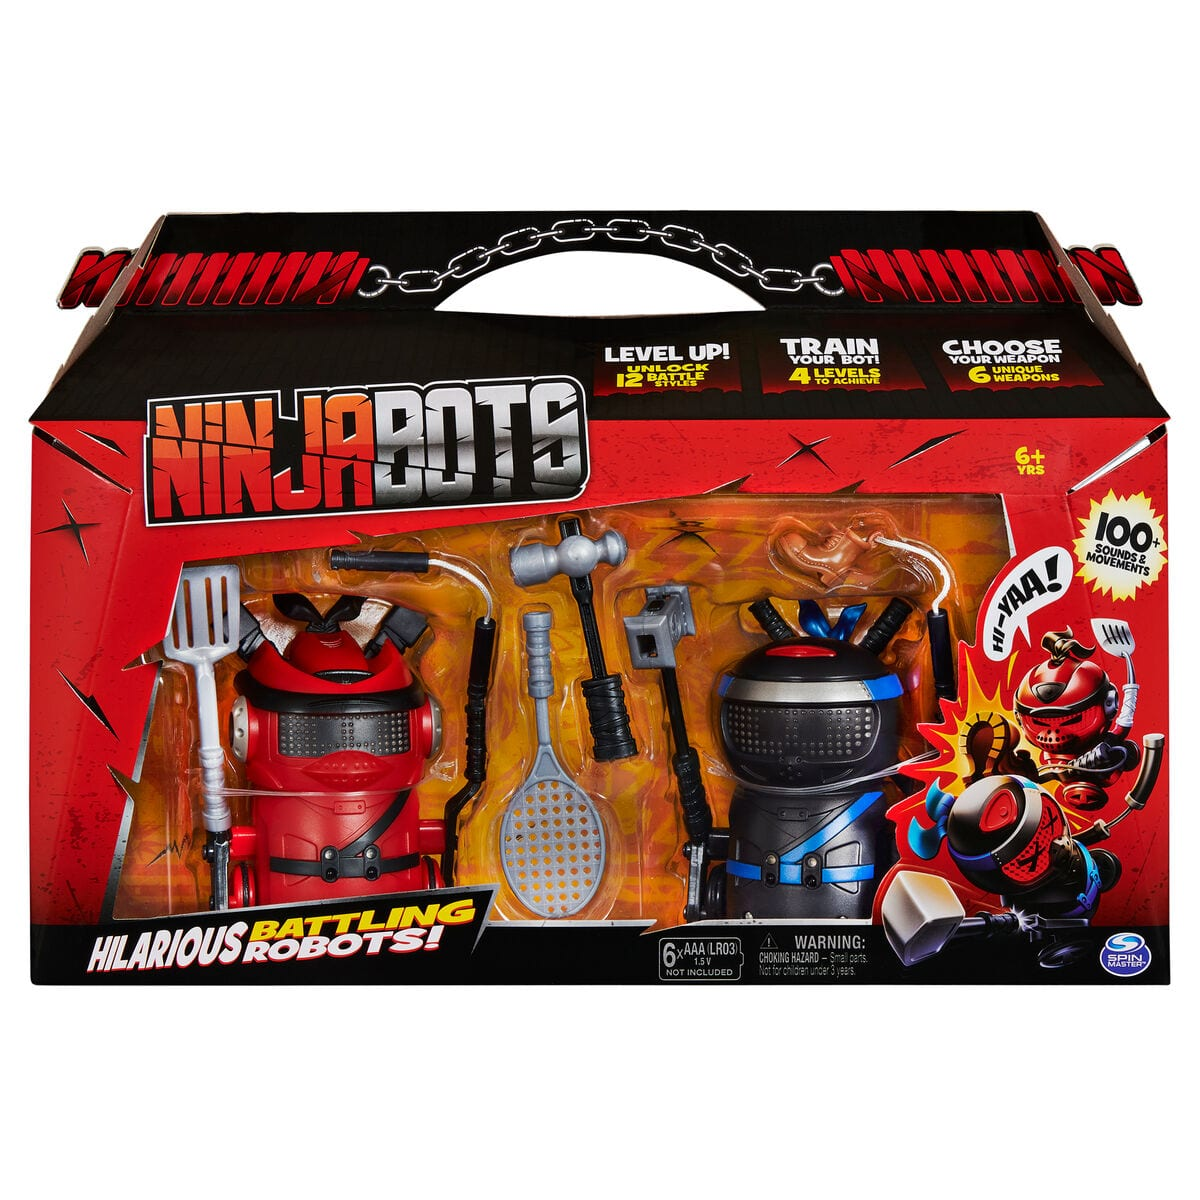 Spin Master Ninja Bots Double Pack Figure giocattolo